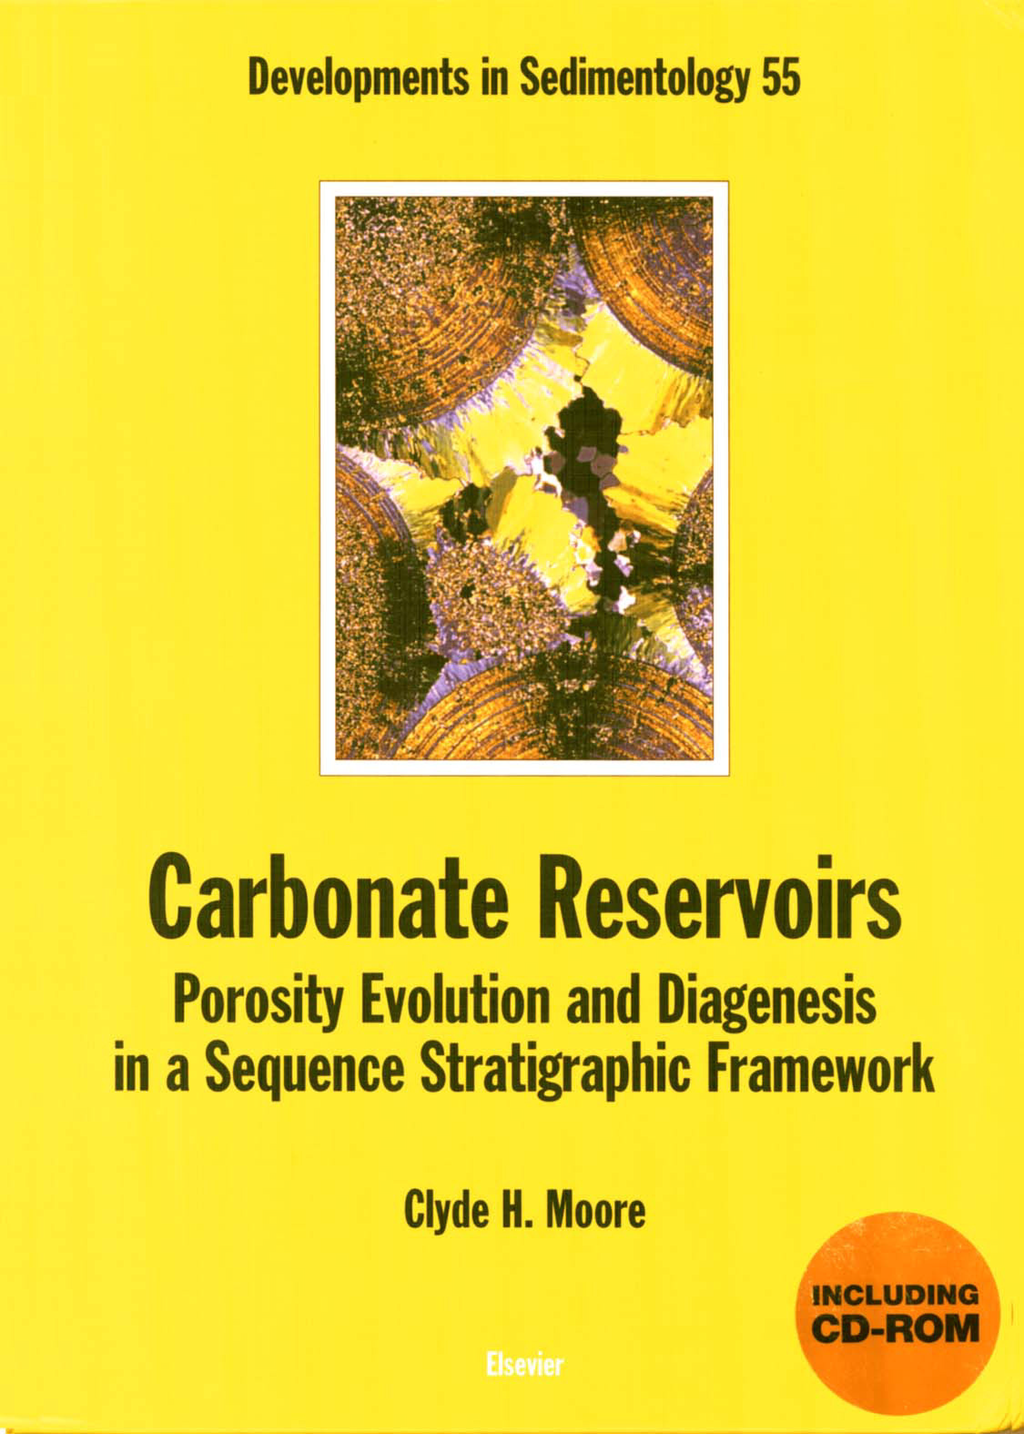 CARBONATE RESERVOIRS: POROSITY, EVOLUTION & DIAGENESIS IN A SEQUENCE STRATIGRAPHIC FRAMEWORK Porosity Evolution and Diagenesis in a Sequence Stratigra